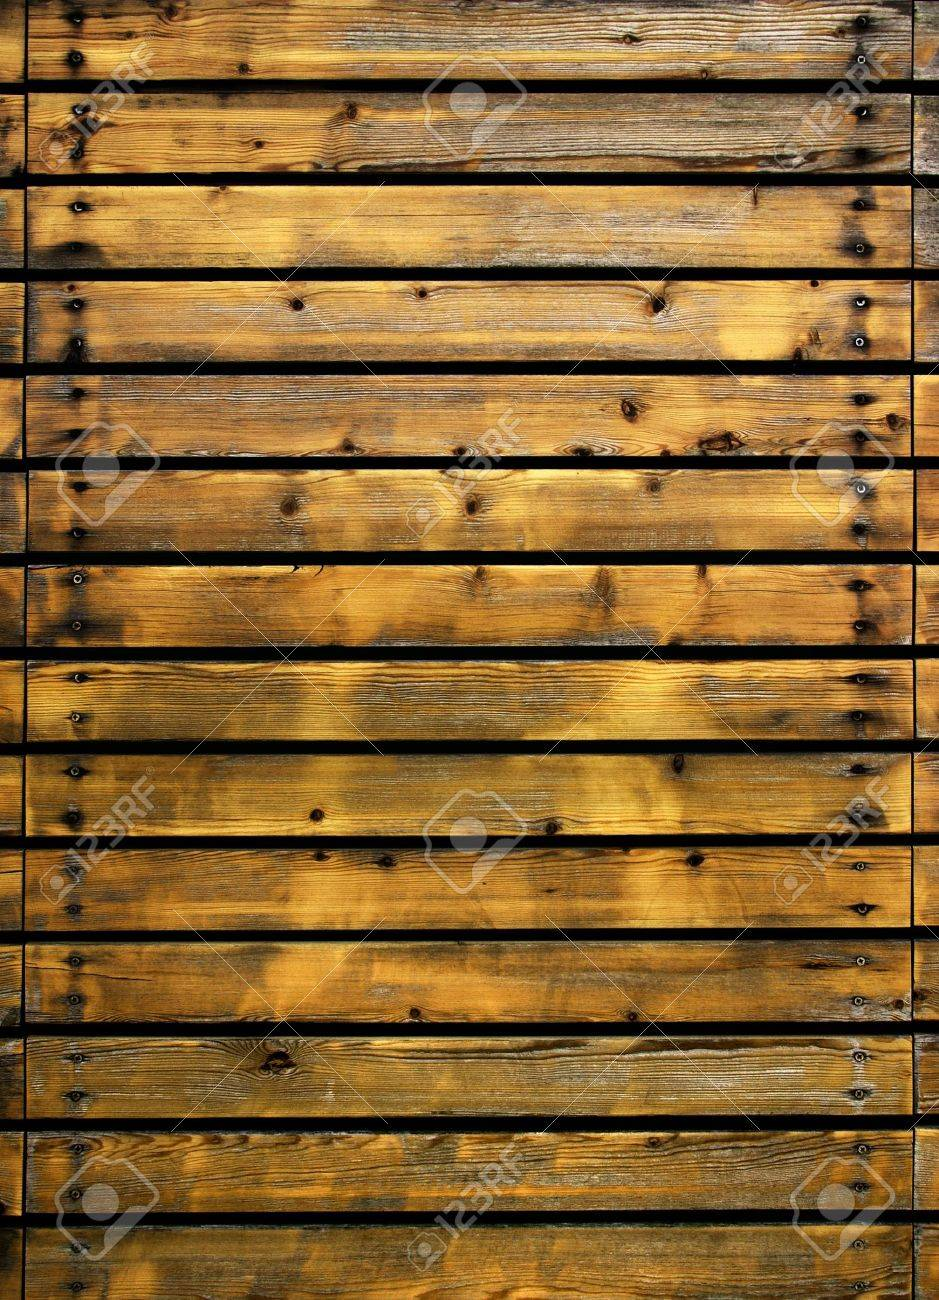 Section of an old fence with wooden planks and nails Stock Photo - 4829858